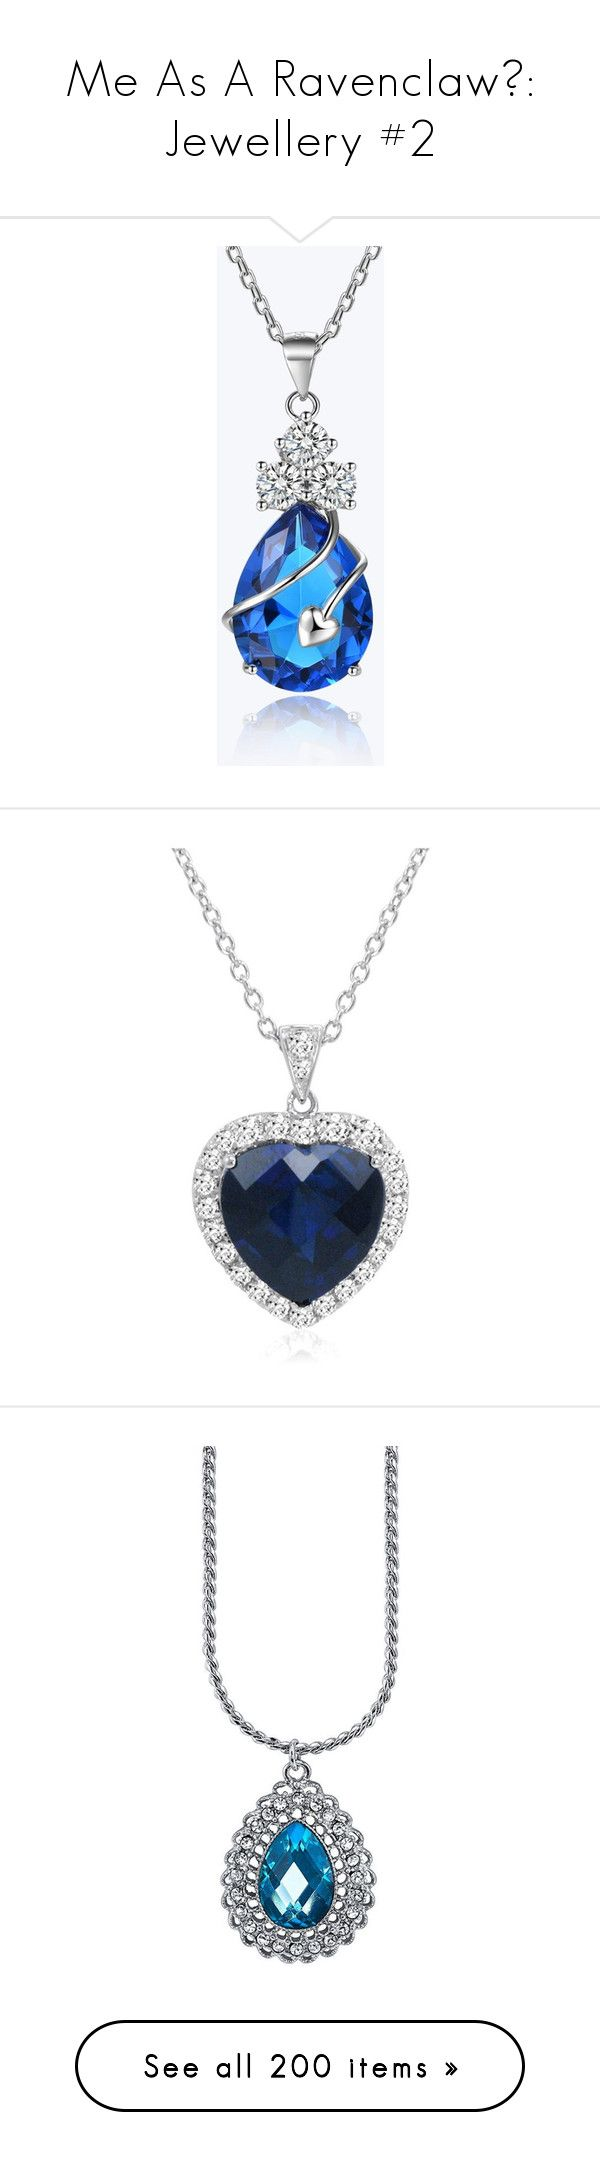 """""""Me As A Ravenclaw💙: Jewellery #2"""" by moon-and-starss ❤ liked on Polyvore featuring jewelry, necklaces, teardrop necklace, heart shaped necklace, heart jewelry, teardrop jewelry, heart shaped jewelry, blue, sapphire pendant necklace and sapphire heart pendant"""